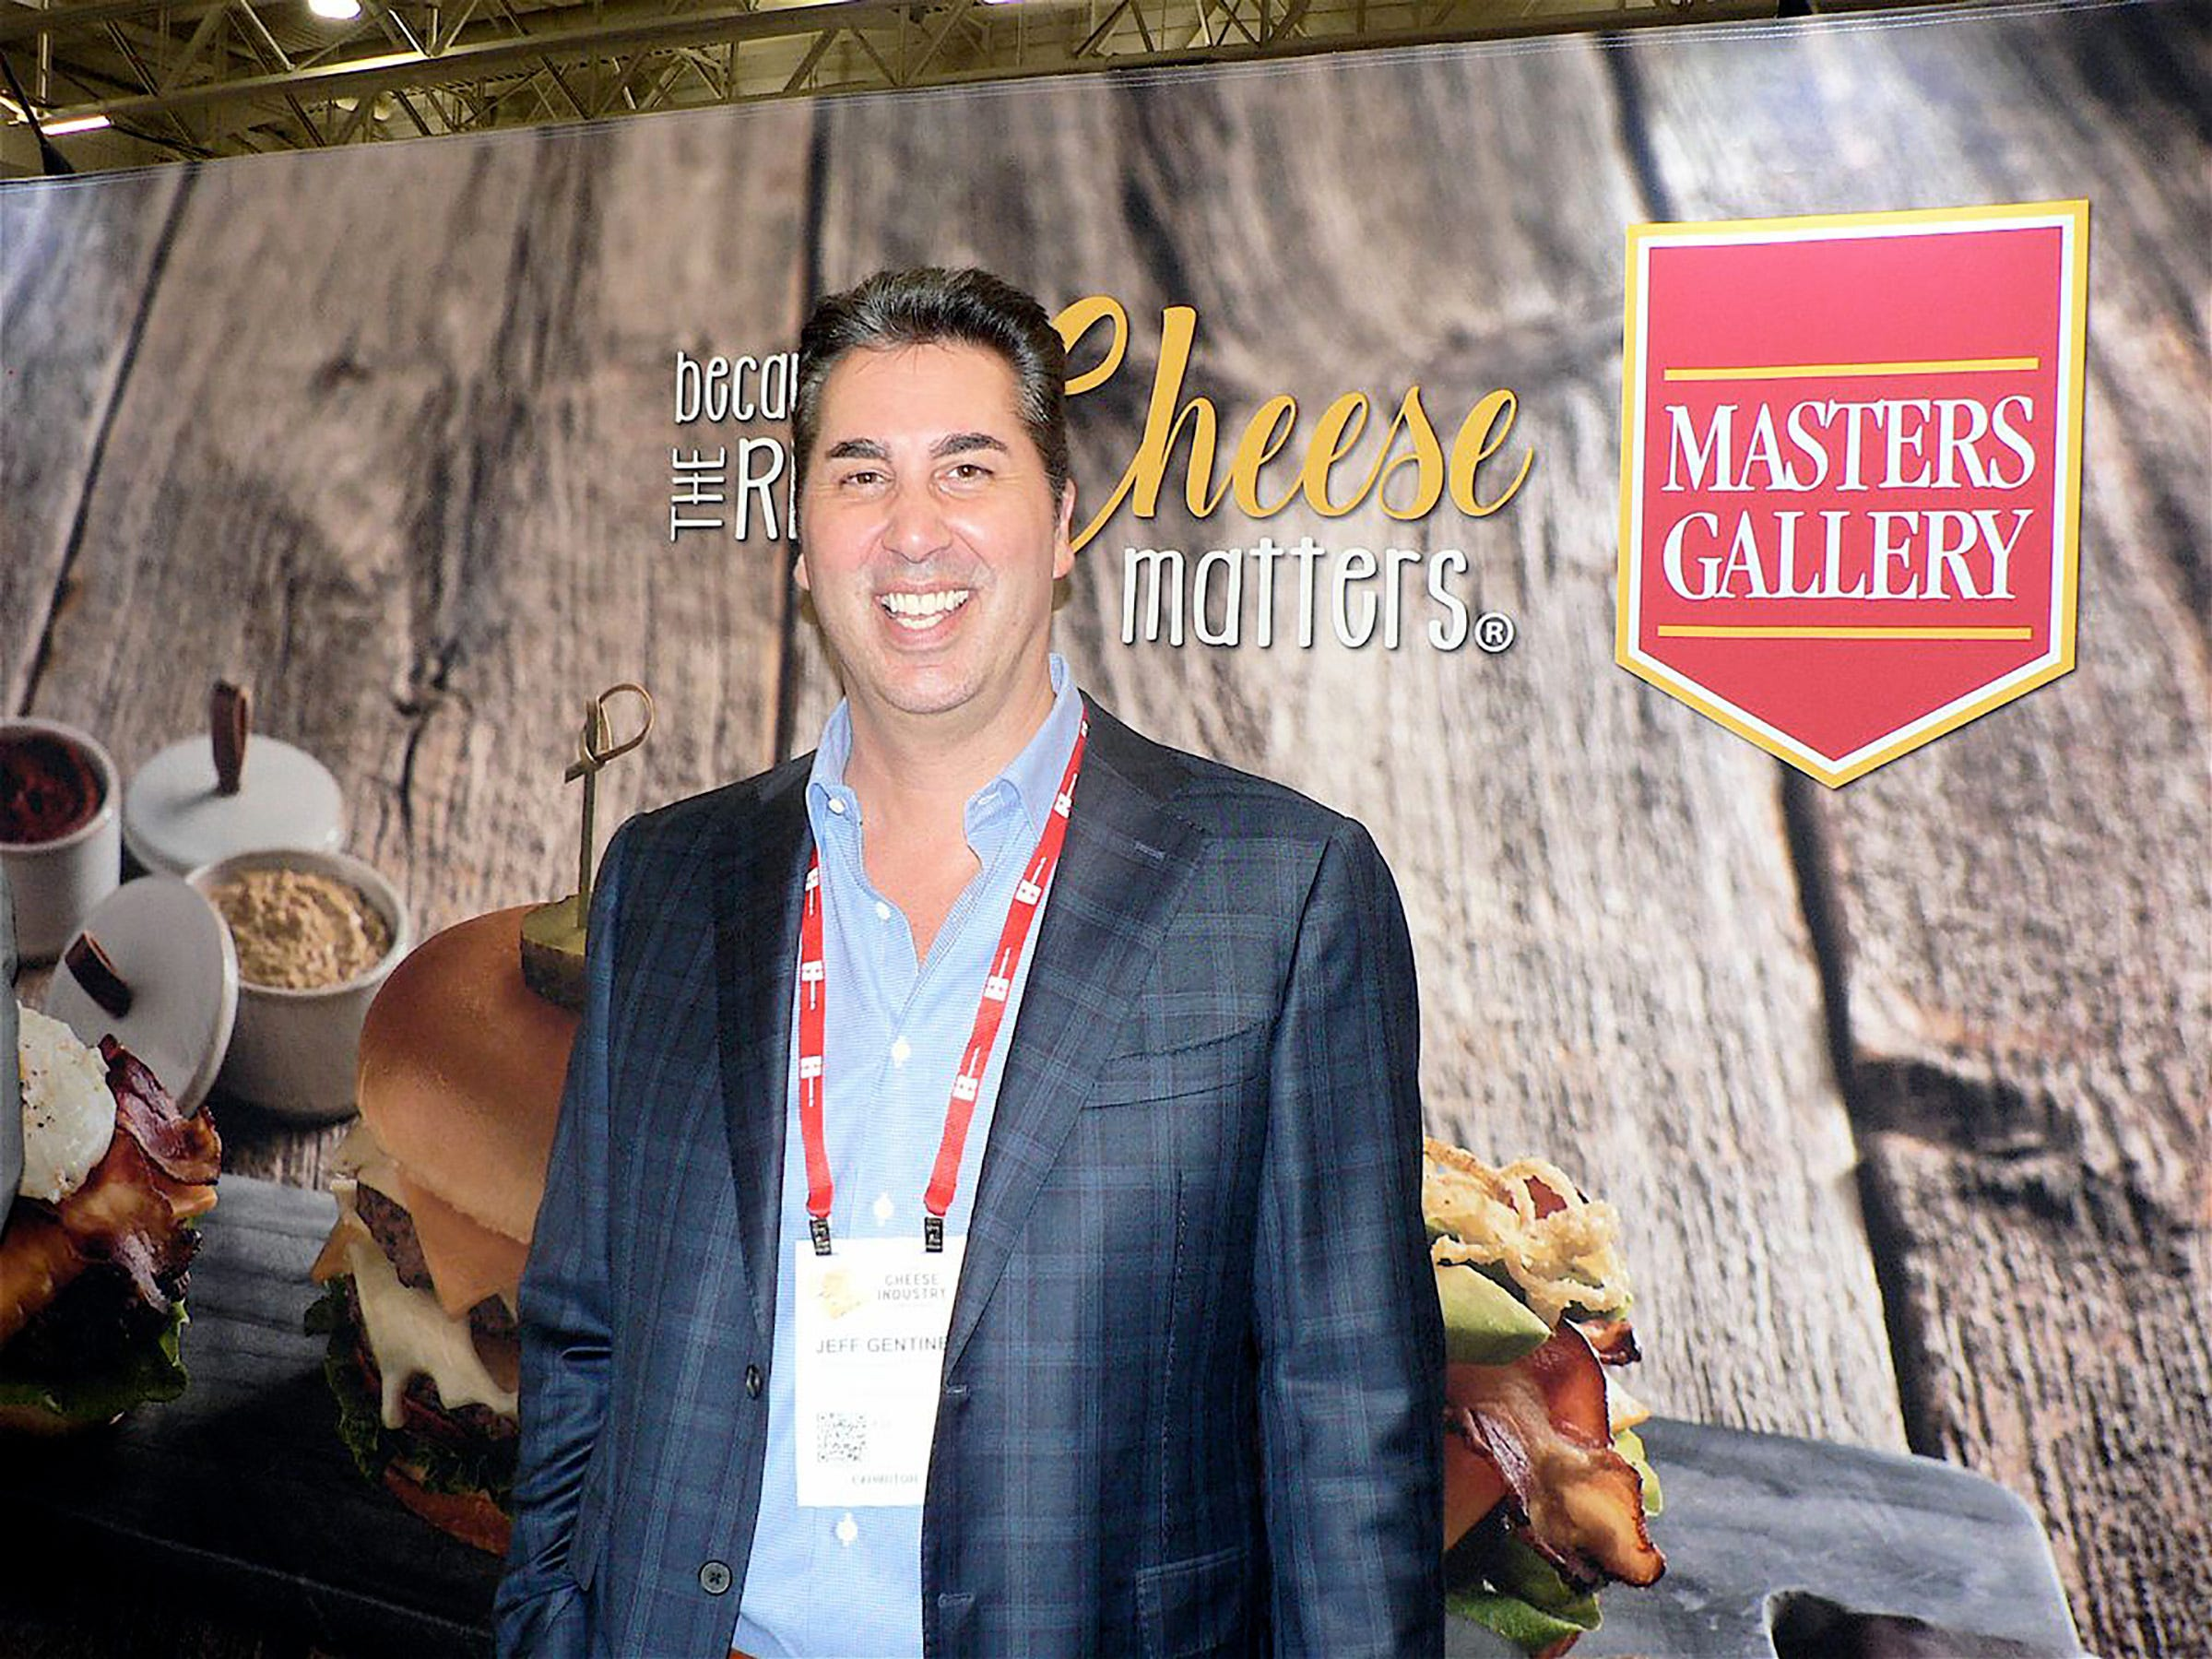 Jeff Gentine, president and CEO of Masters Gallery, the huge cheese marketer, was at the company booth.